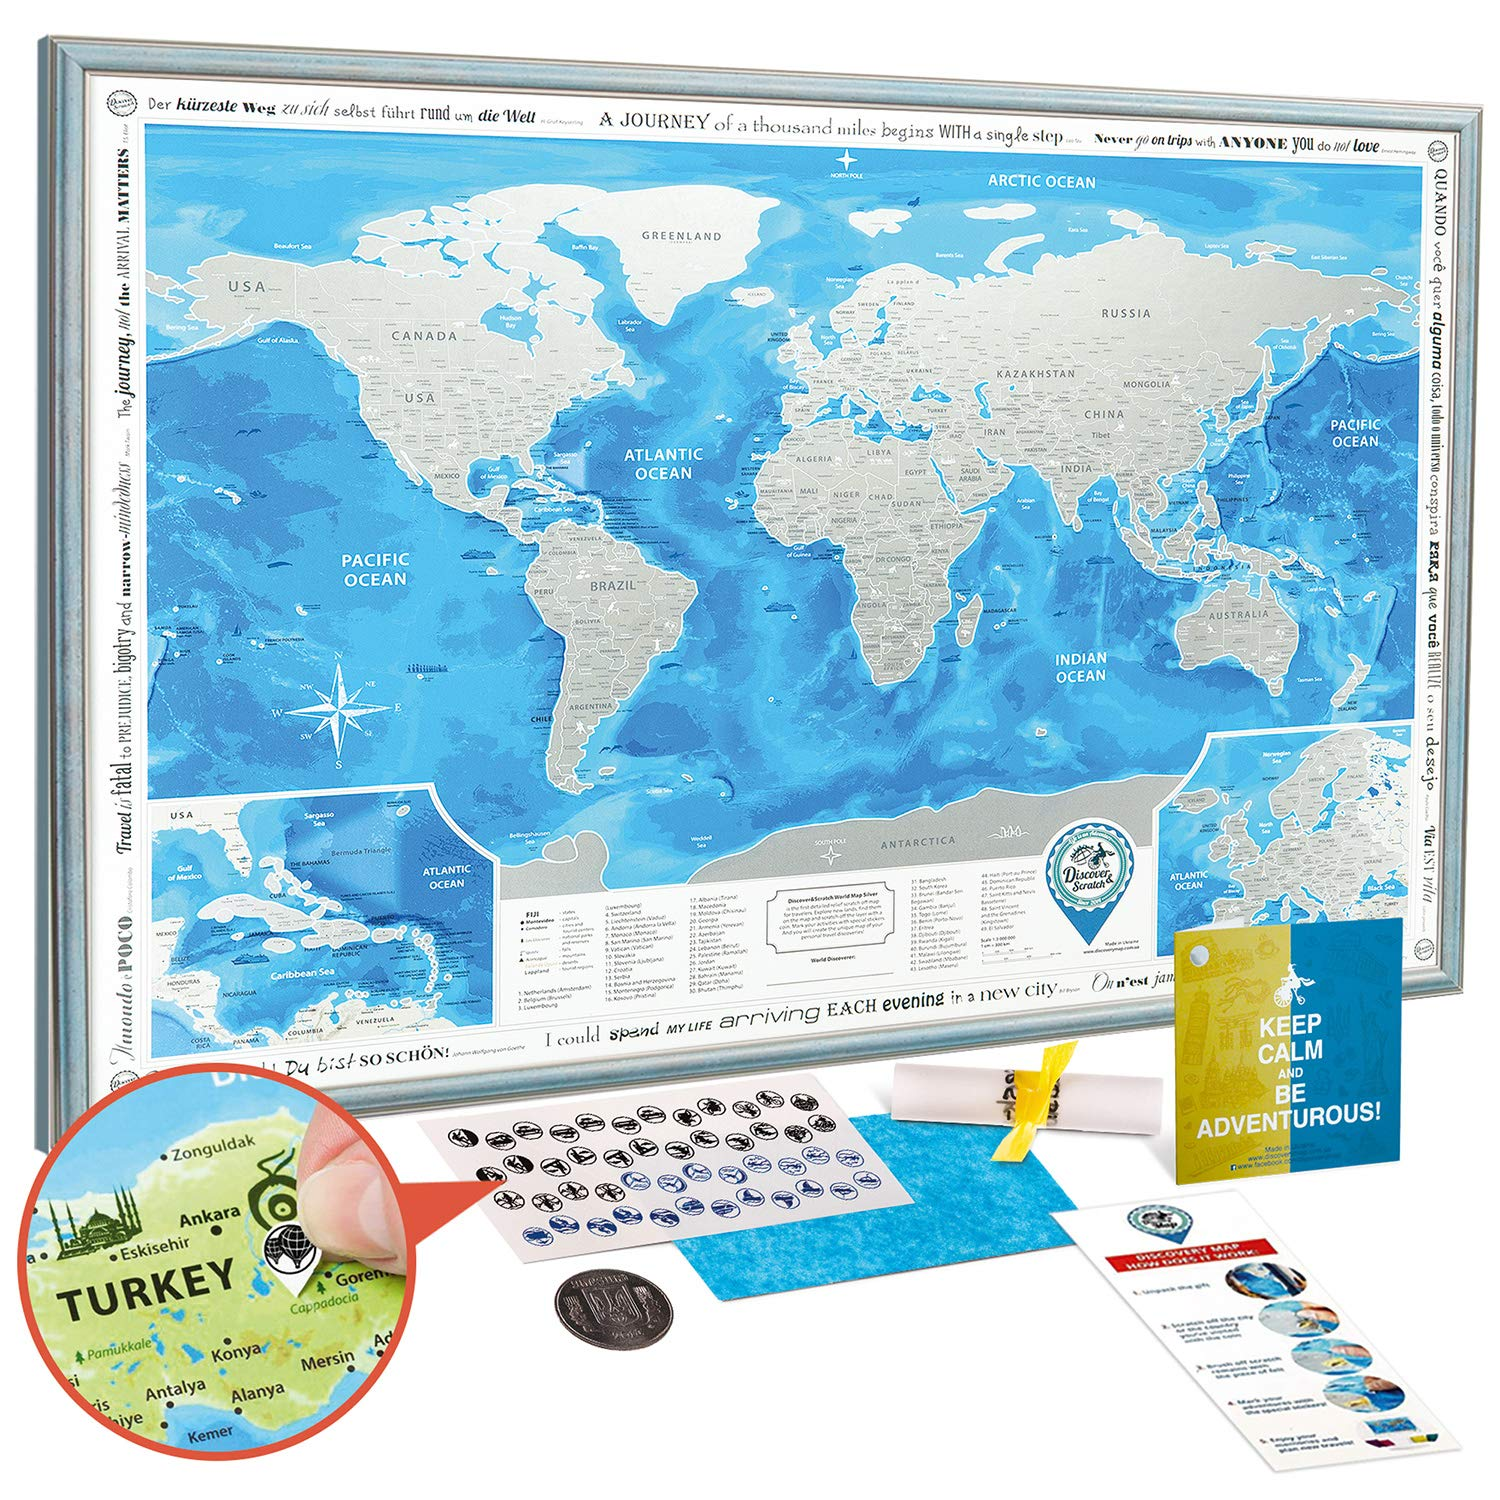 Map Of The World Detailed.Scratch Off World Map Framed Premium Detailed World Travel Map Scratch Off 35x25 With Blue Frame Award Winning Large Silver Foil World Map Scratch